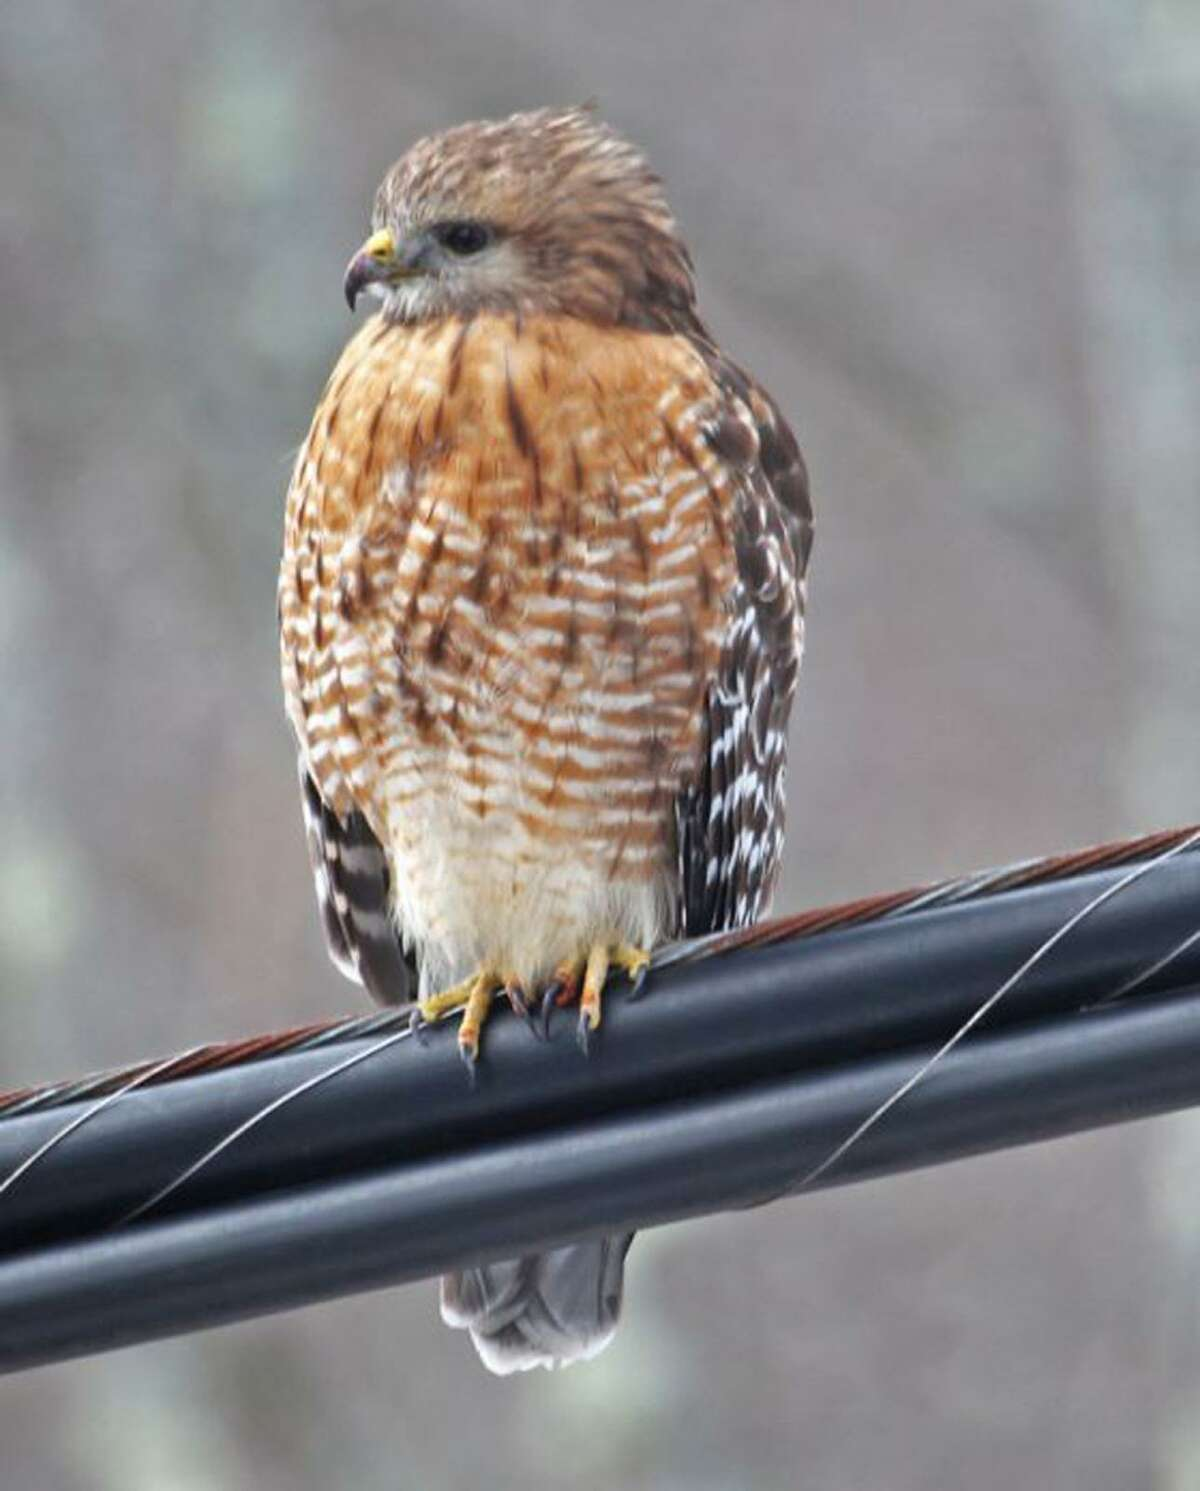 A red-shouldered hawk rests on a wire in New England this winter.